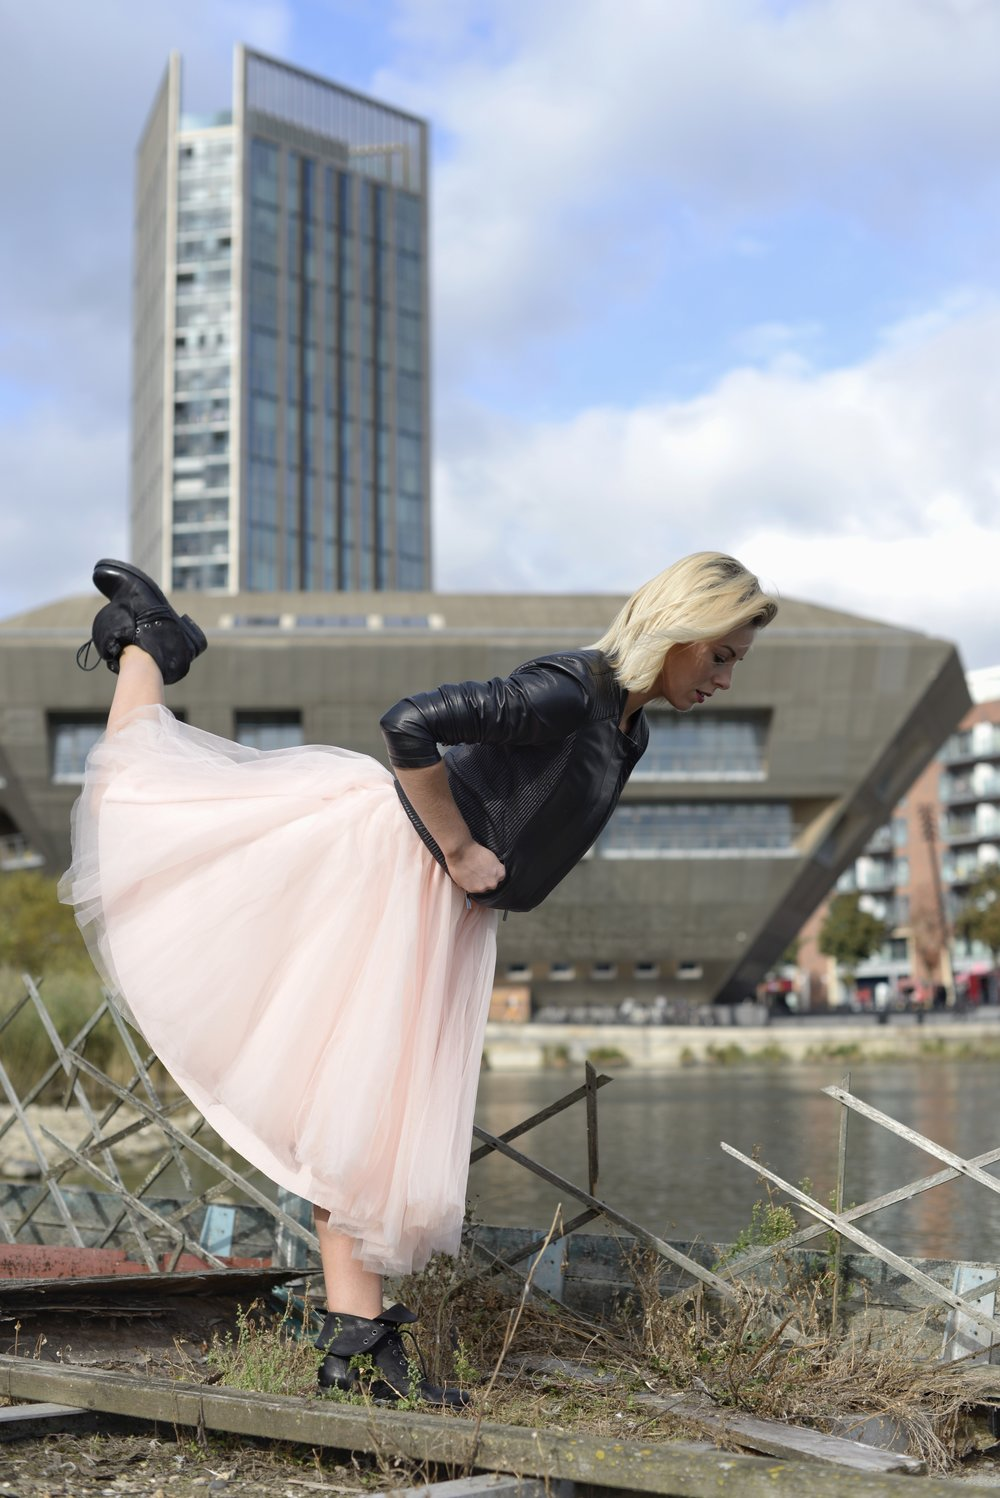 CANADA WATER    ⫩  Canada Water is a freshwater lake and wildlife refuge in Rotherhithe in the Docklands in south-east London.   Dancer:    Ana Badea